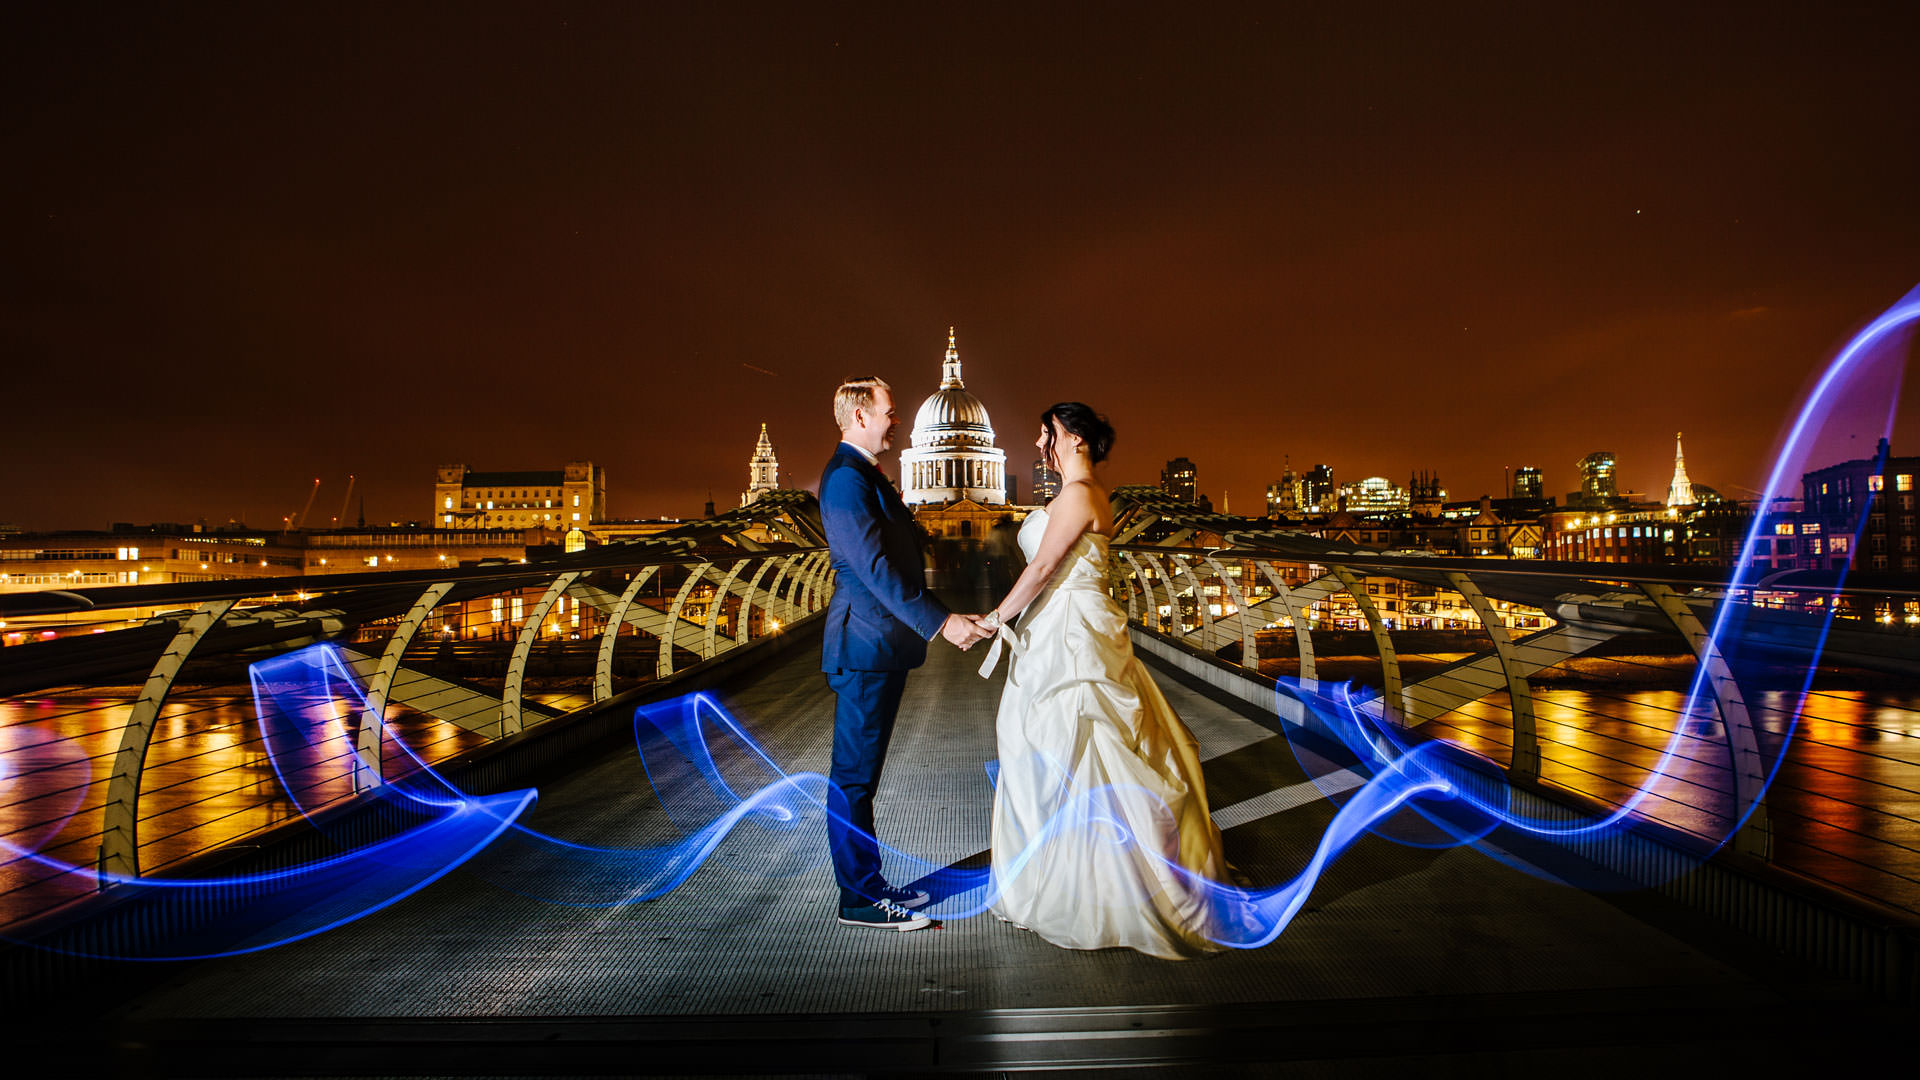 Journalistic style wedding photography by Mark Tierney.